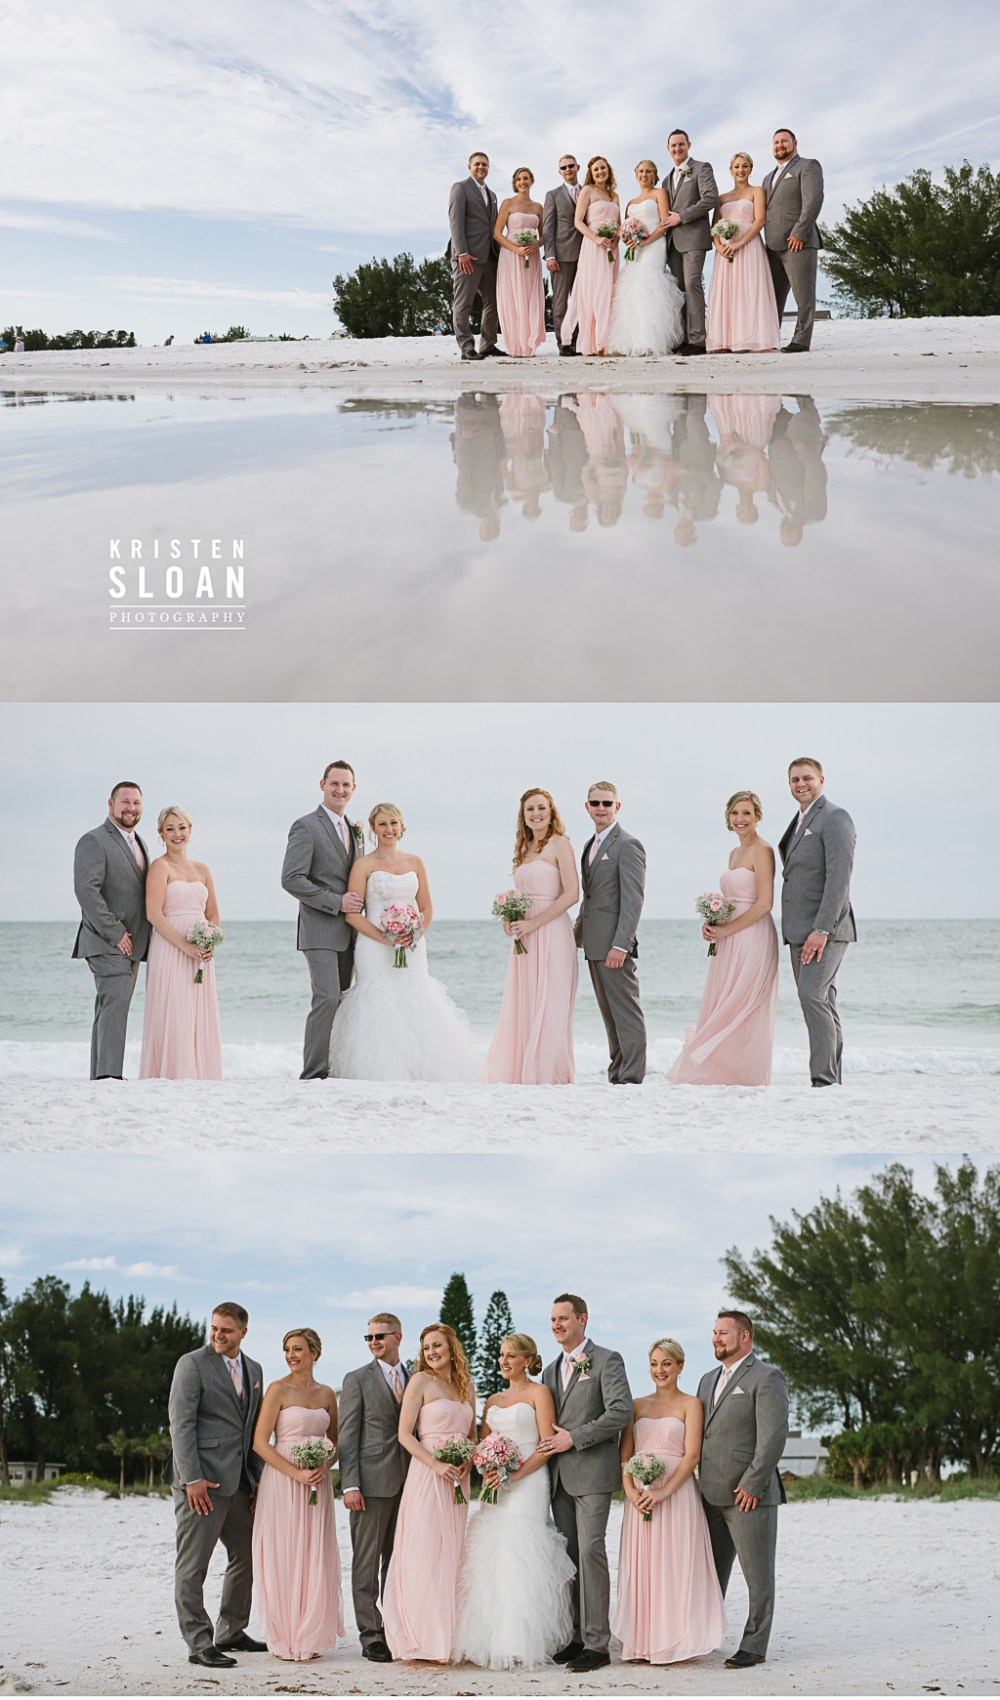 Anna Maria Island Florida Beach Wedding Photographer Kristen Sloan, Sandbar Restaurant Wedding Anna Maria Island, Pink annd Gray Beach Wedding